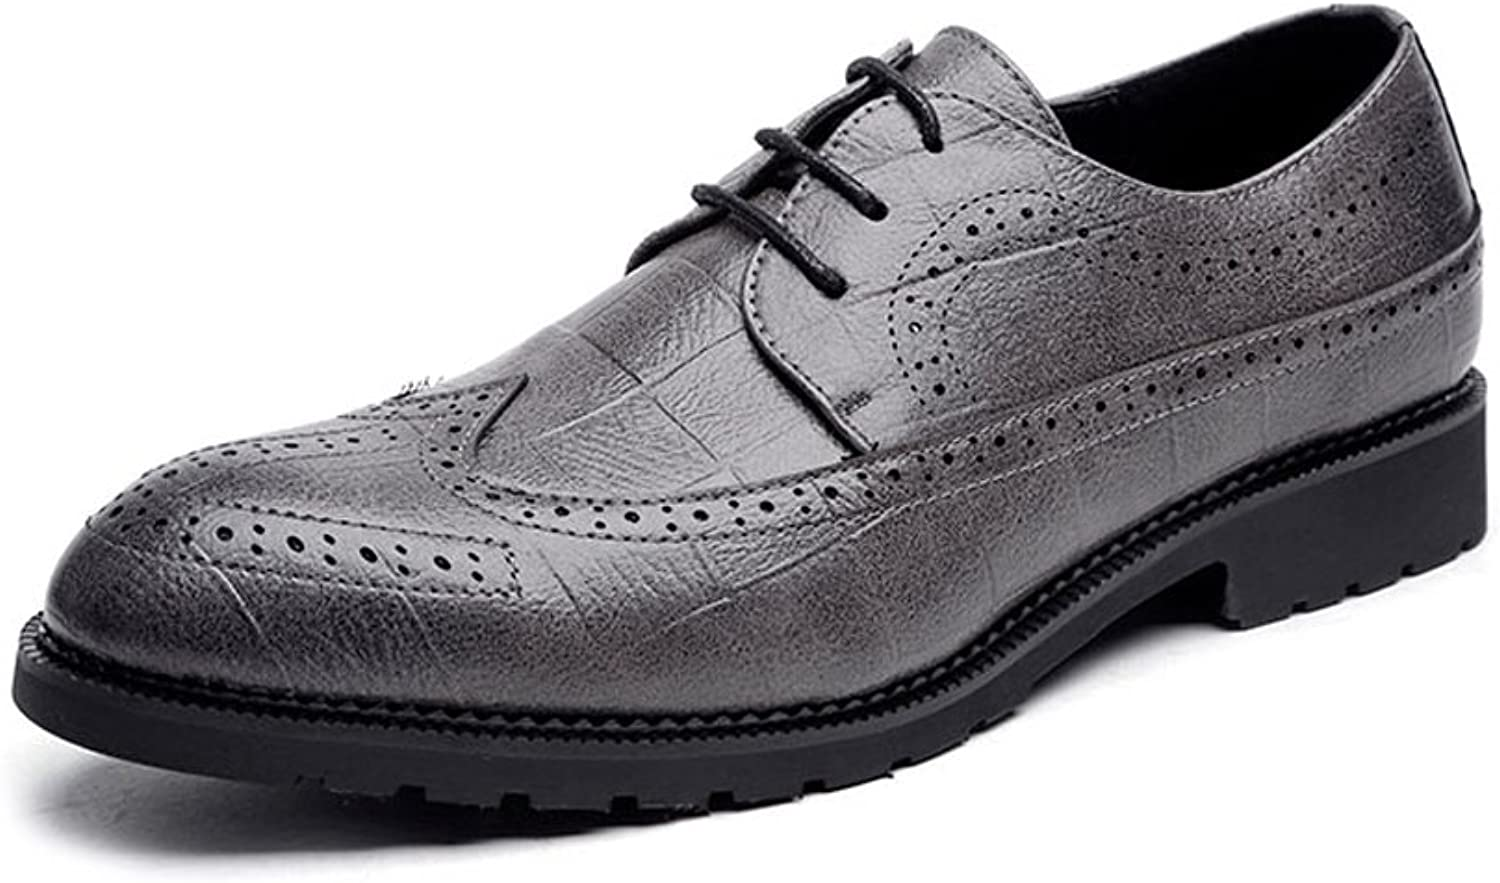 CHENXD shoes, Men's Classic Lace Up Breathable PU Leather Brogue shoes Business Lined Oxfords Formal shoes